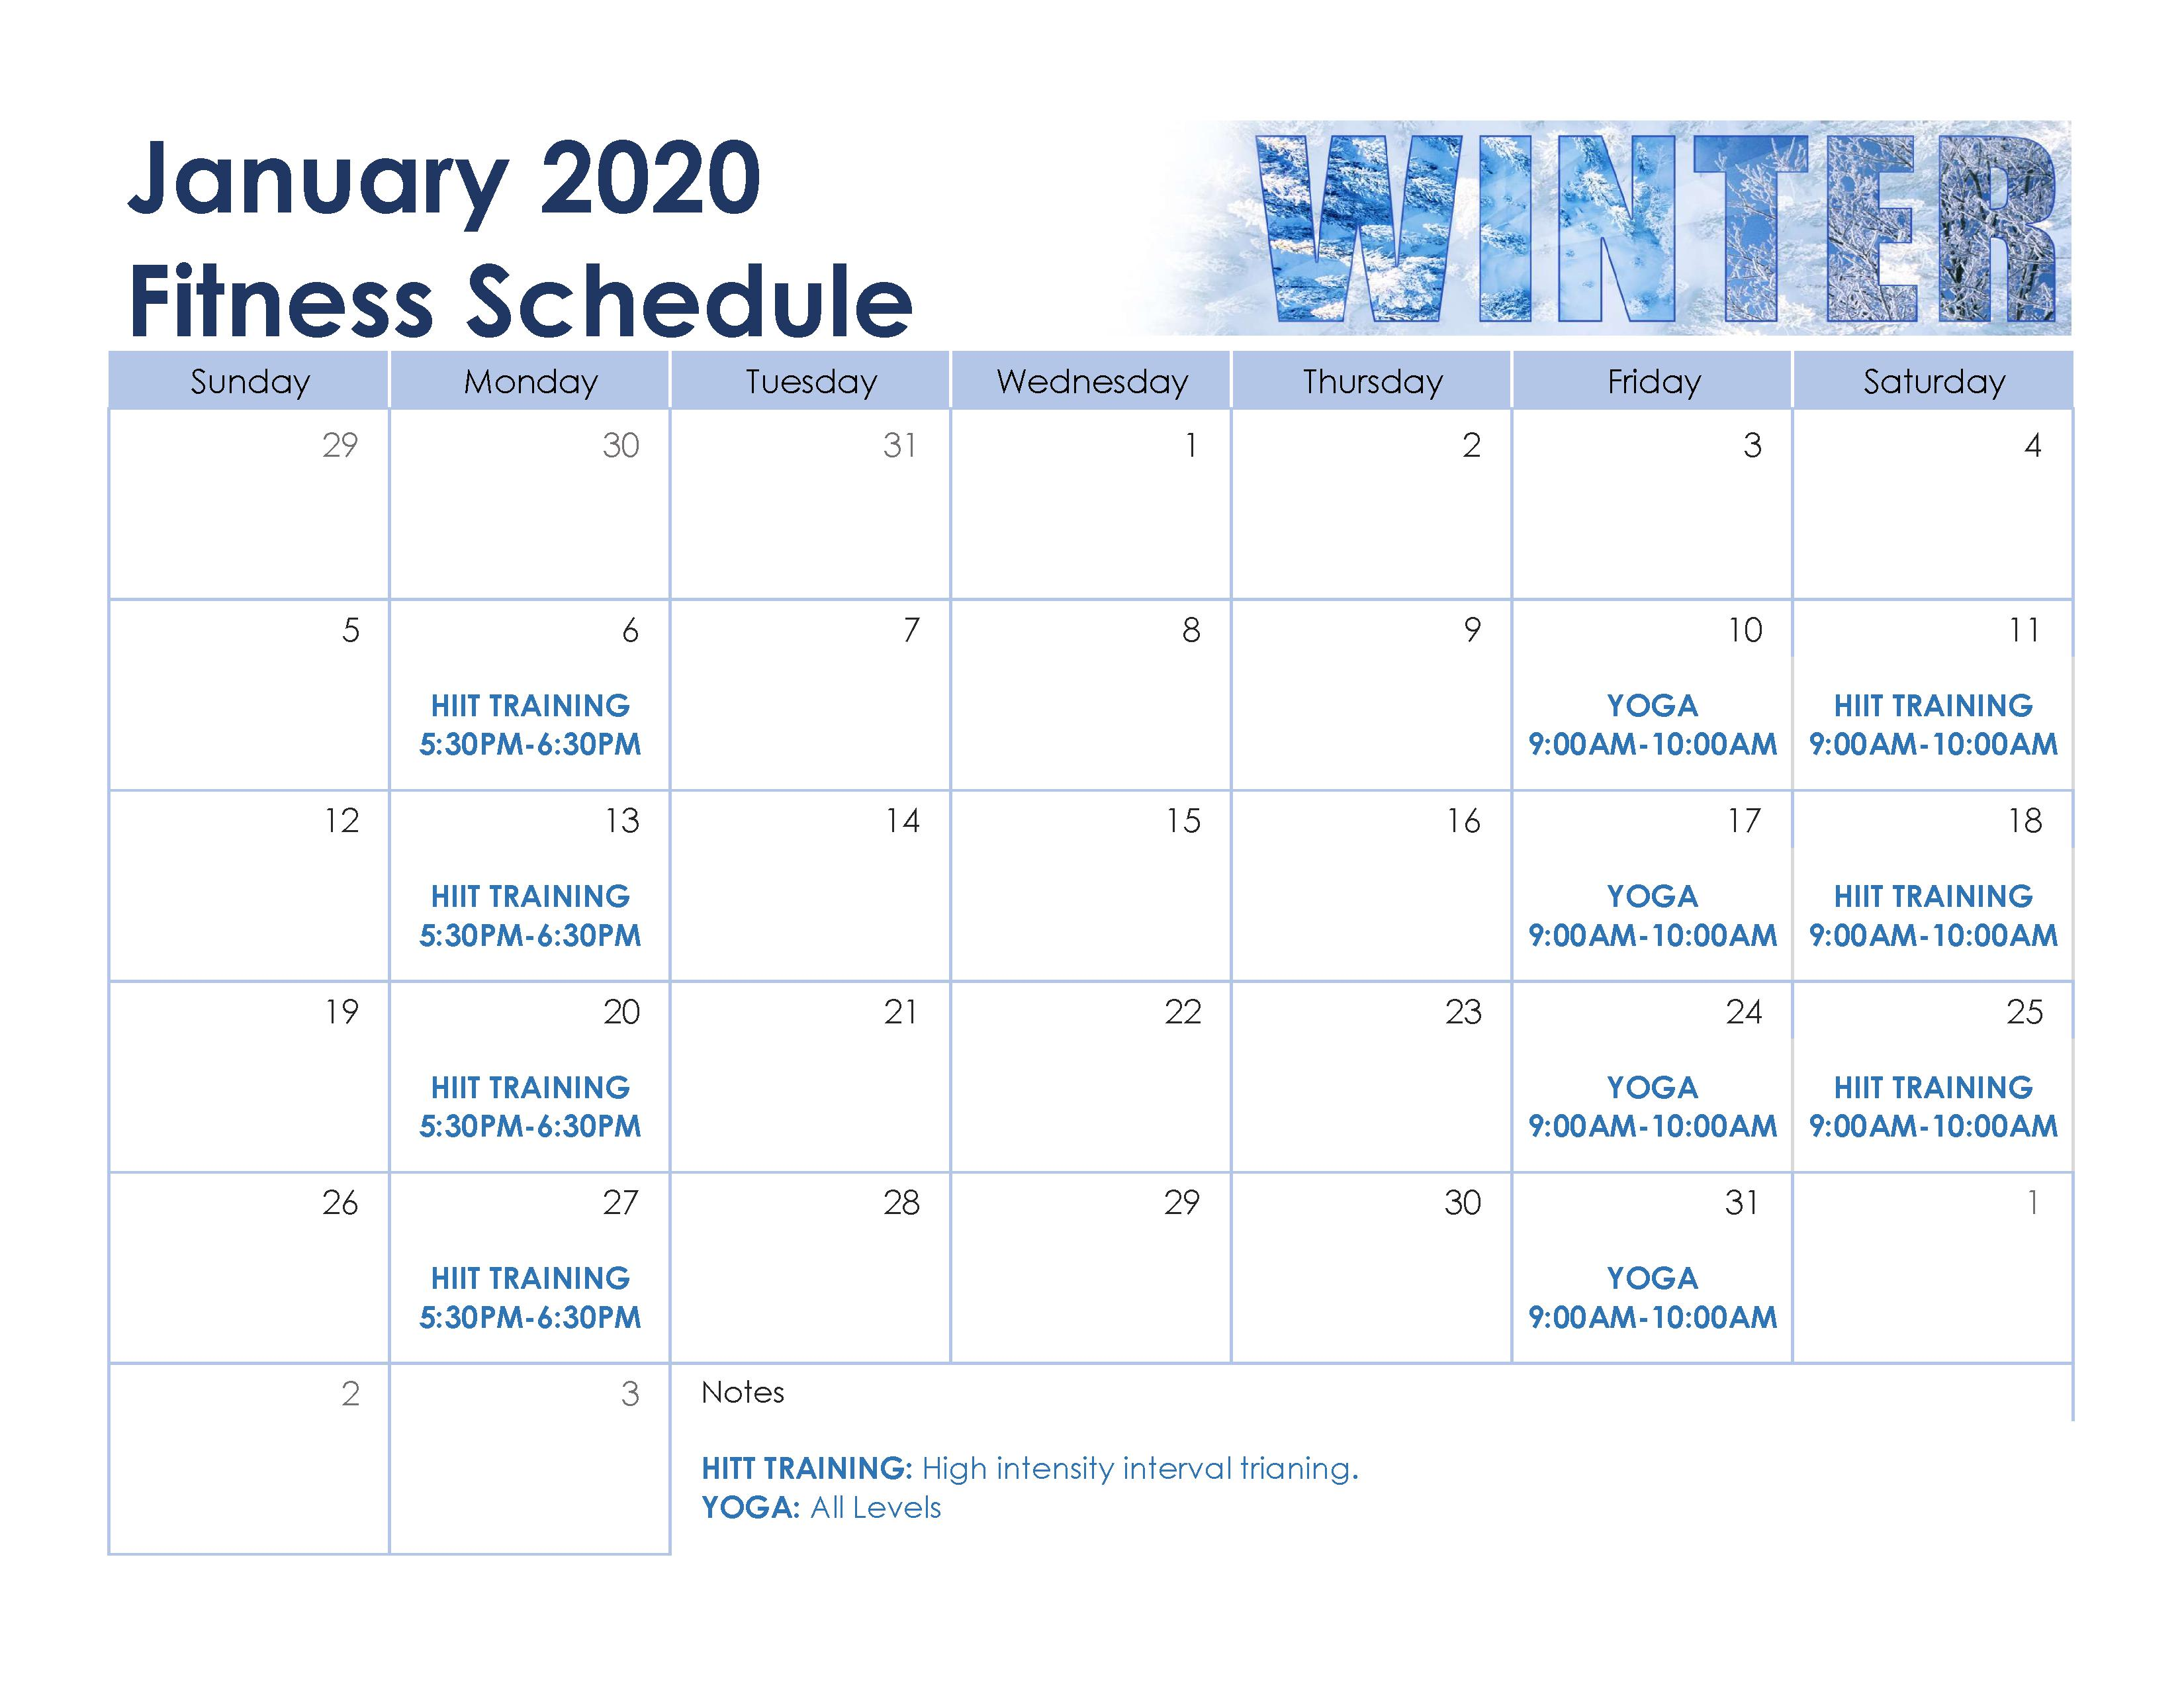 January Fitness Schedule